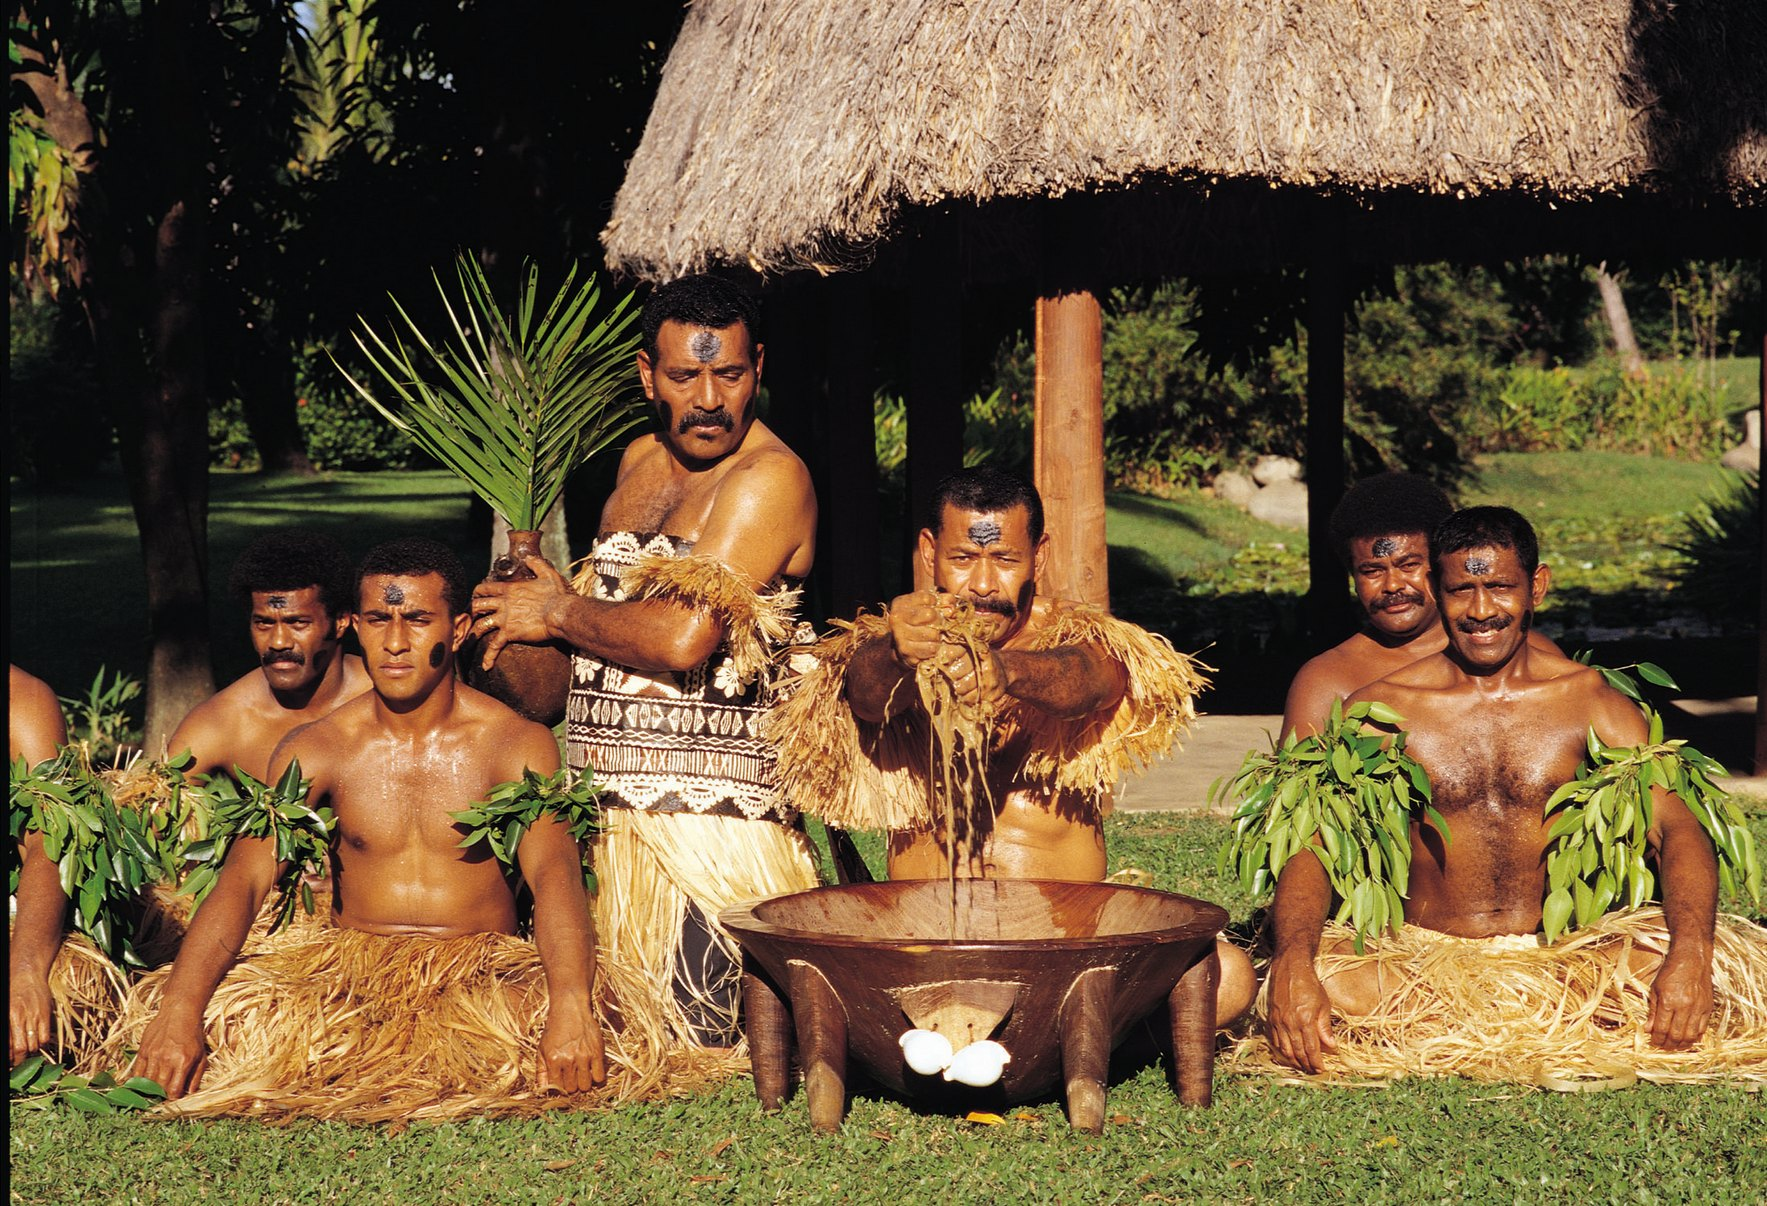 Porn images in fiji